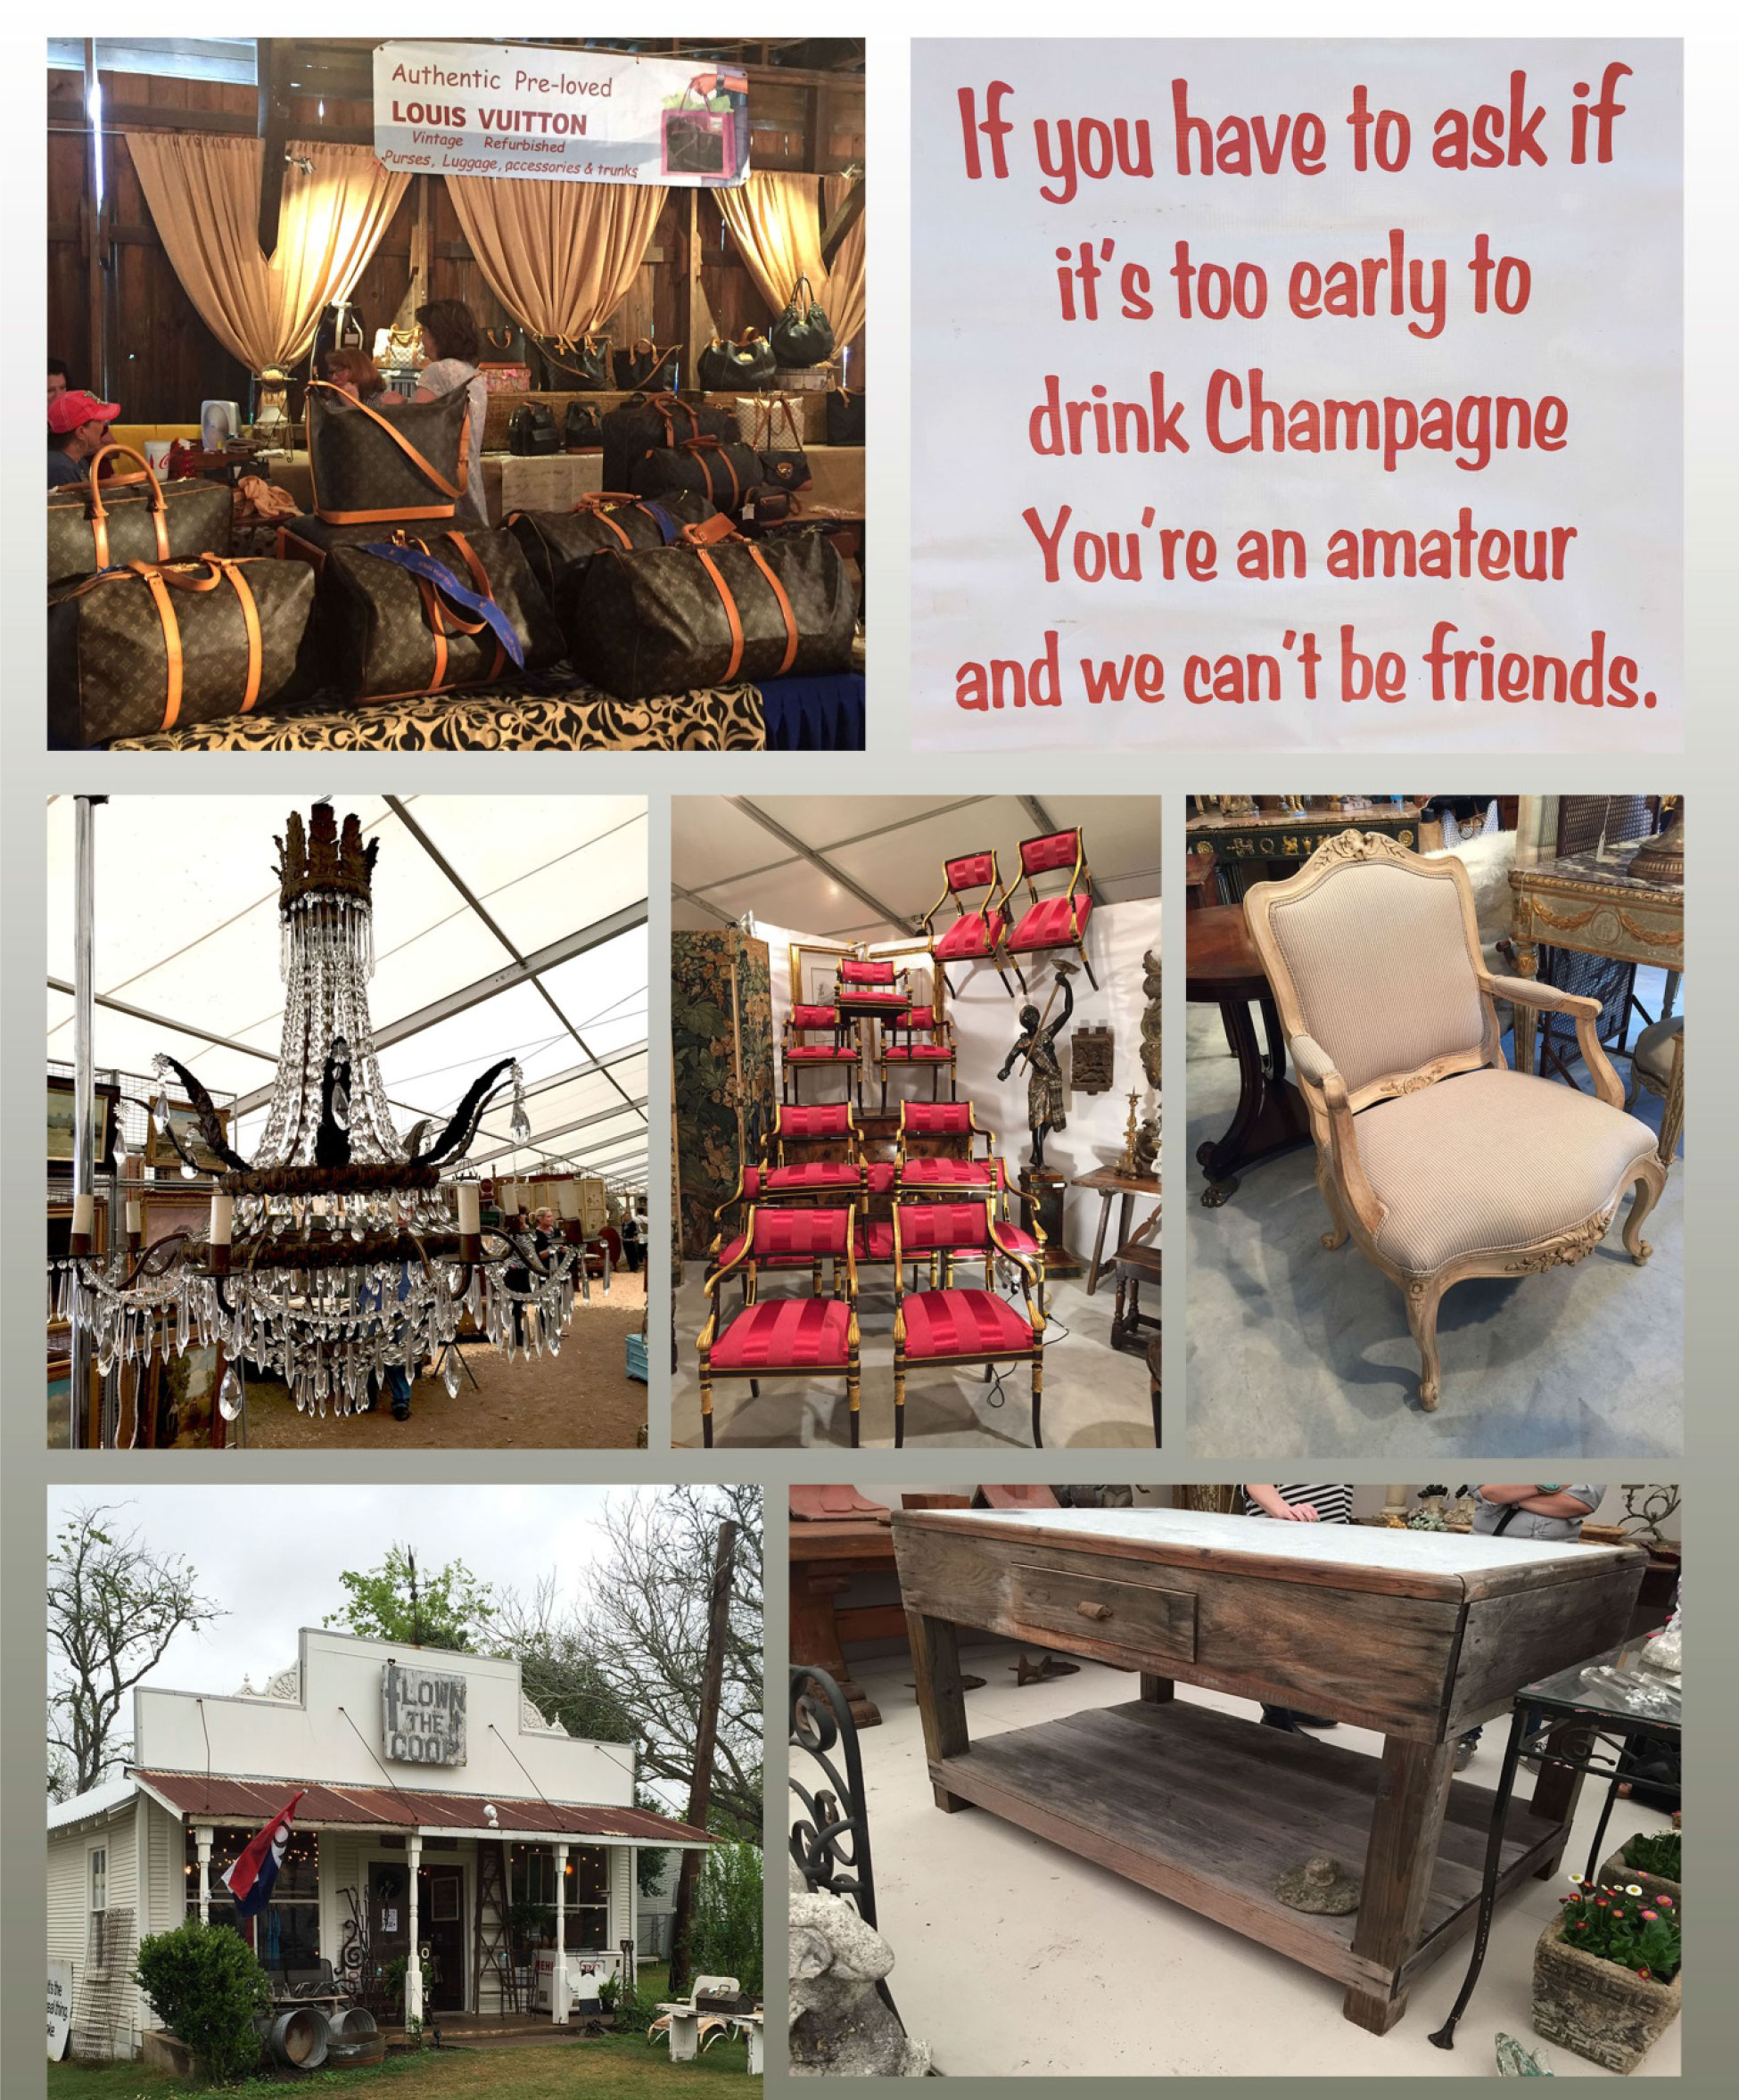 texas round isenhour companion top furniture in antique w with julie blogs interior through designer a journey dodson weekend